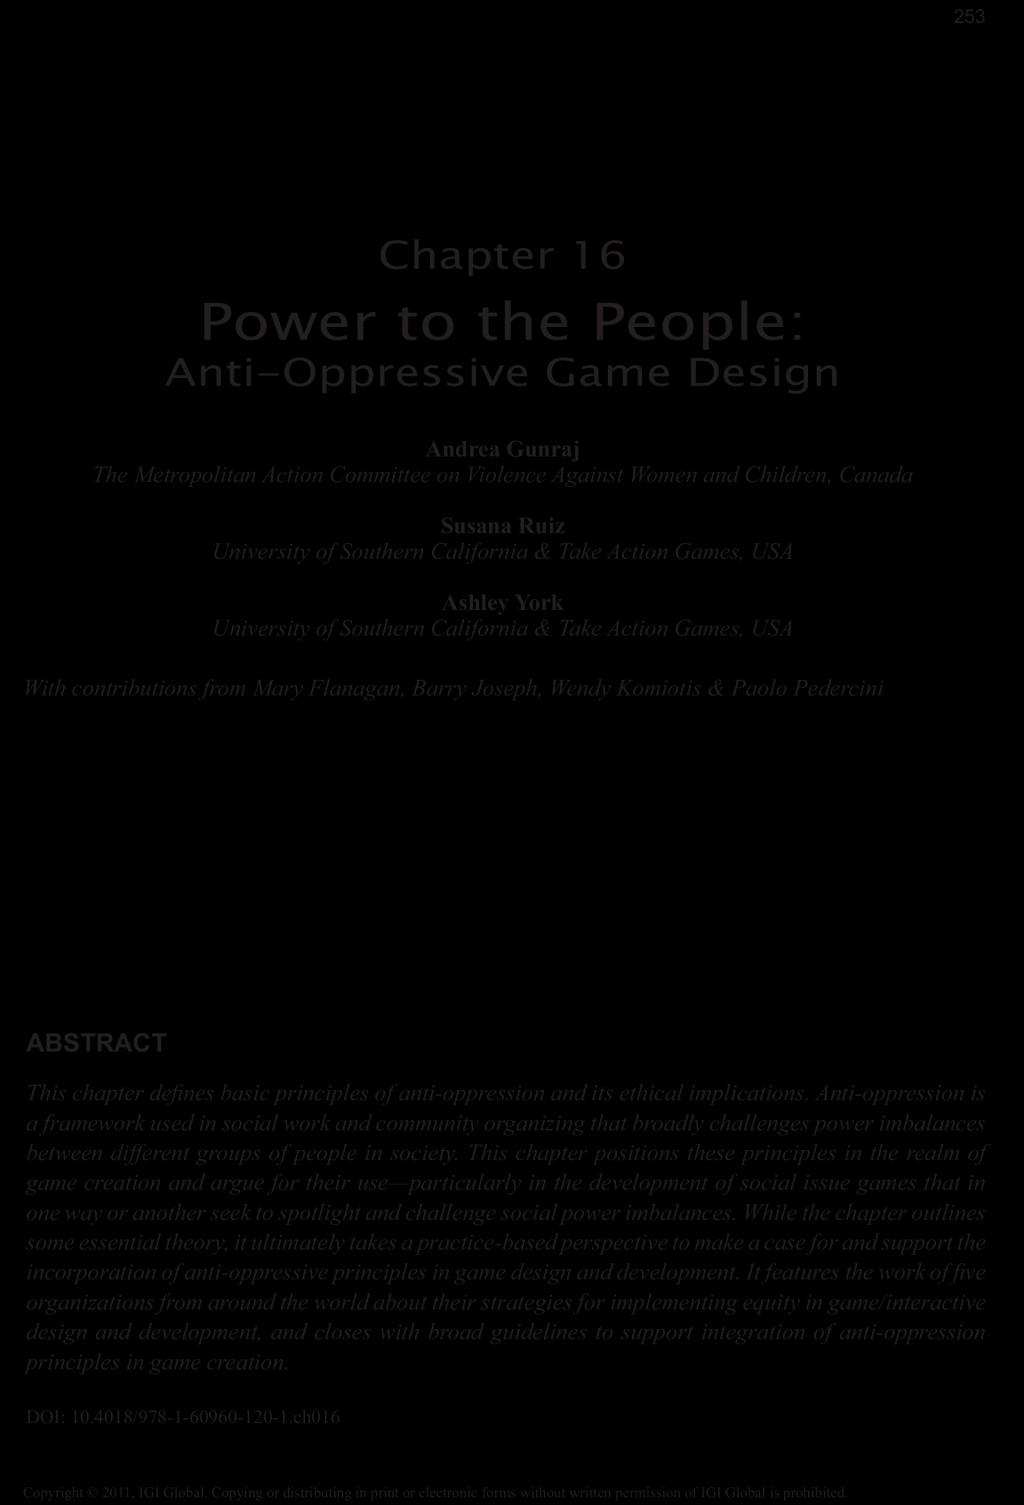 015 Power To The People Short Essay On Famine Marvelous Large